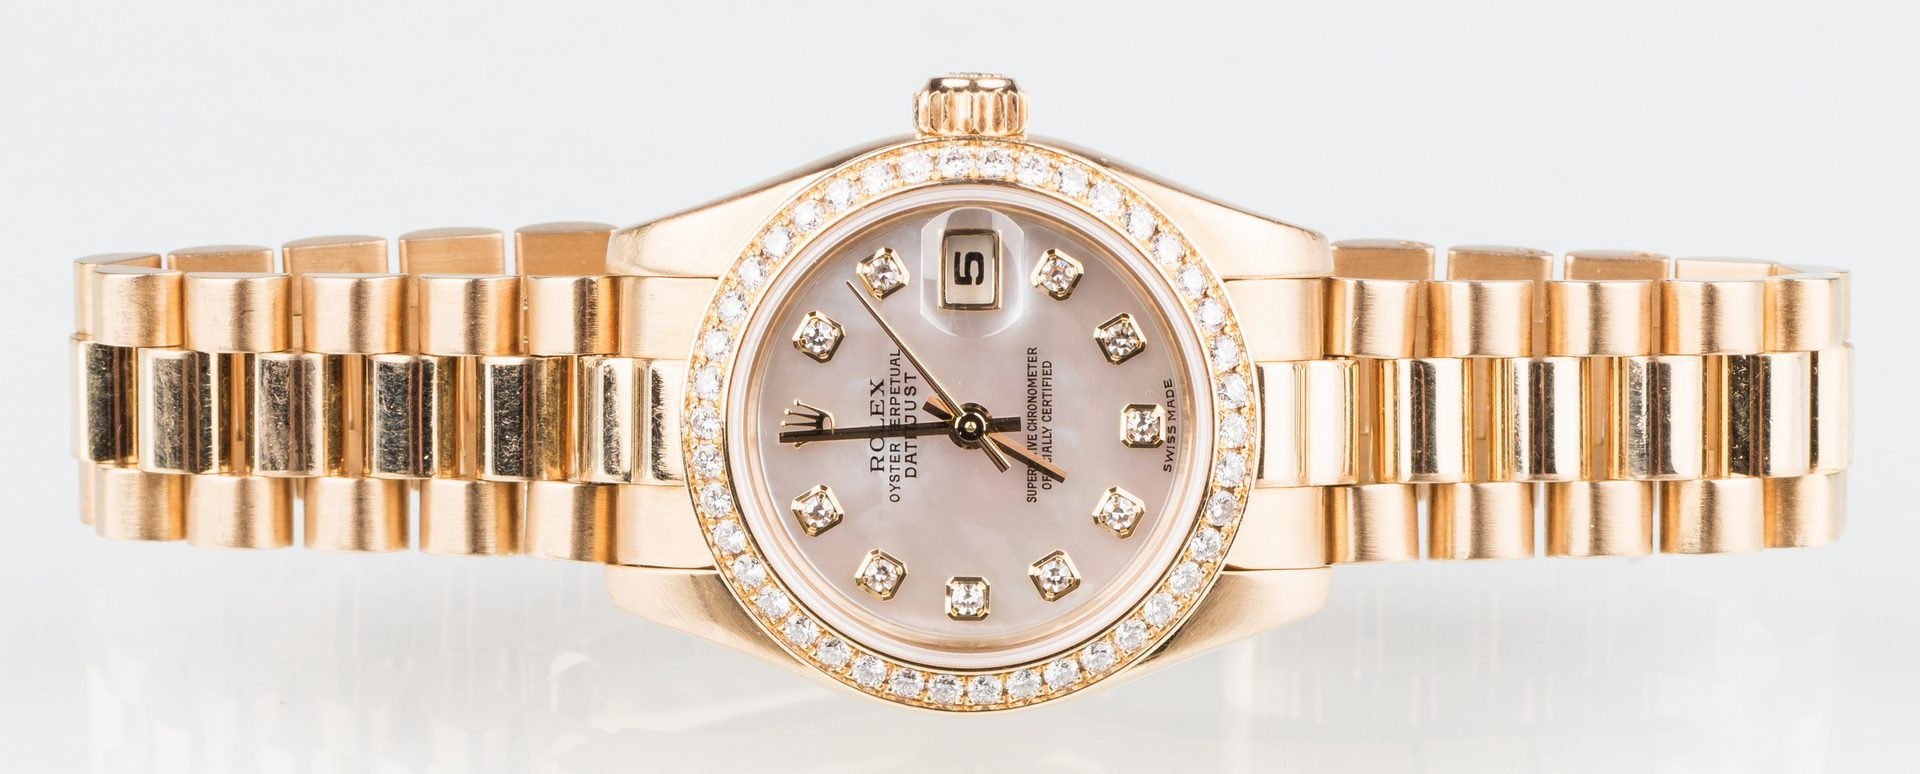 Lot 57: Ladies all 18K Rolex Datejust Diamond Watch